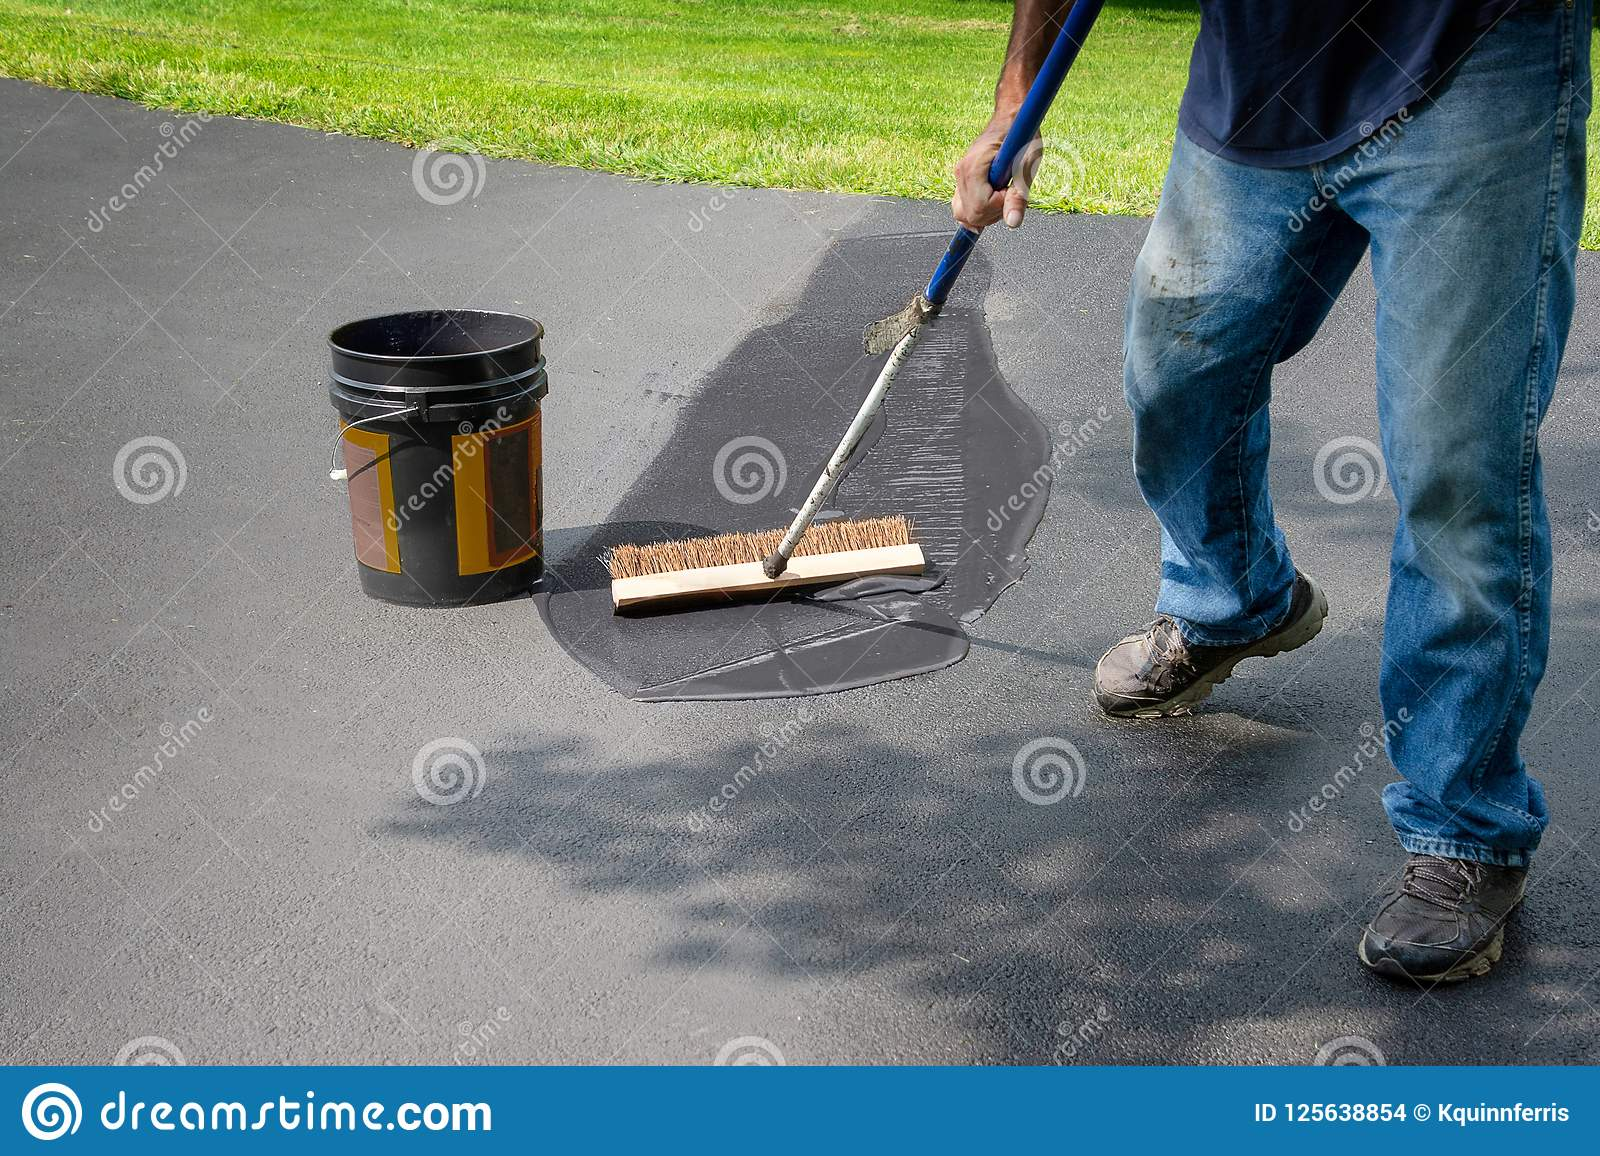 Spreading asphalt in home driveway stock photo image of coating download spreading asphalt in home driveway stock photo image of coating pavement 125638854 solutioingenieria Gallery